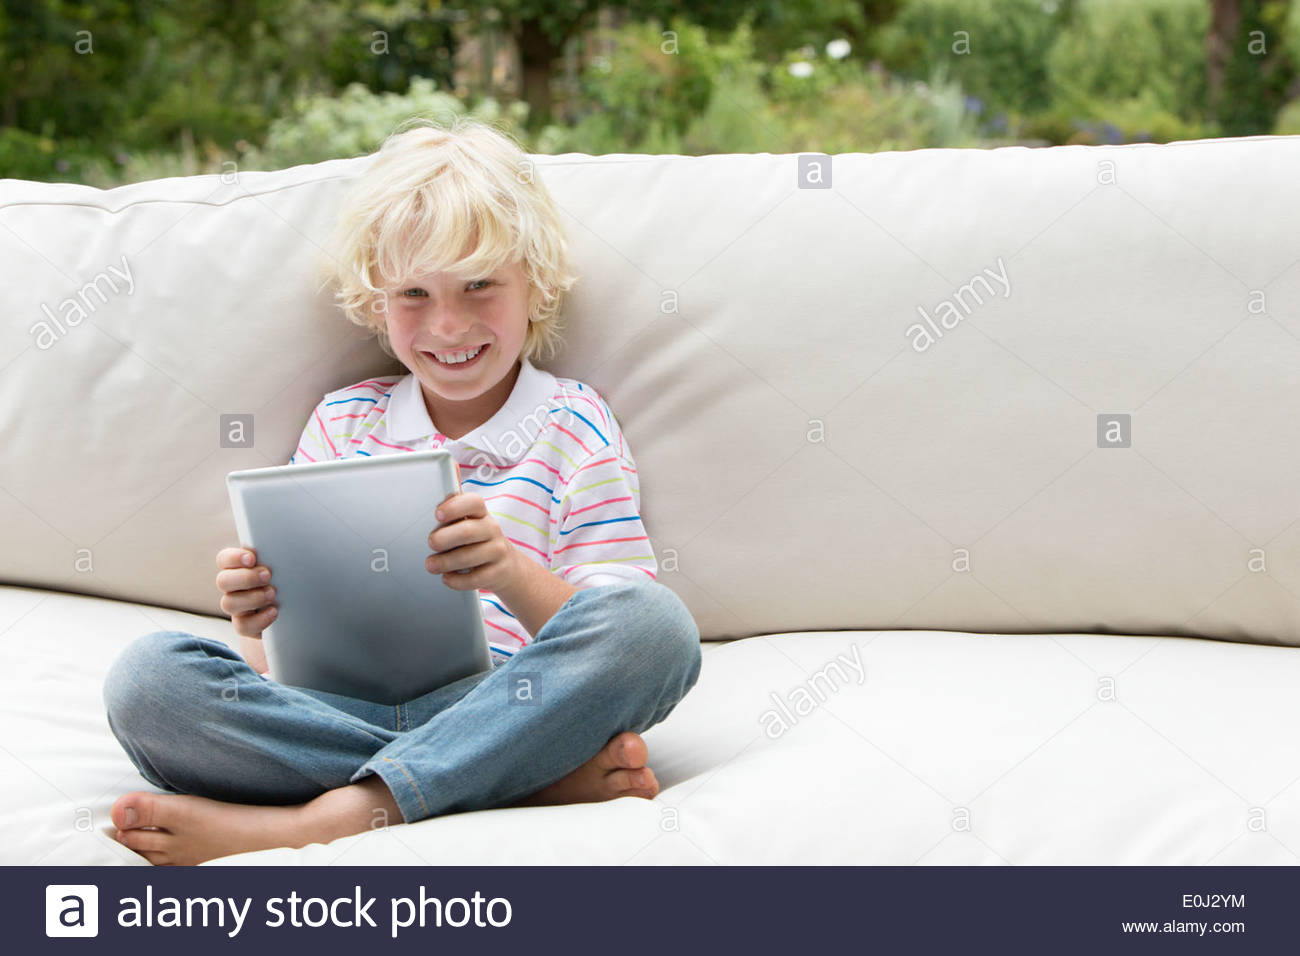 Portrait of smiling boy using digital tablet on outdoor sofa - Stock Image